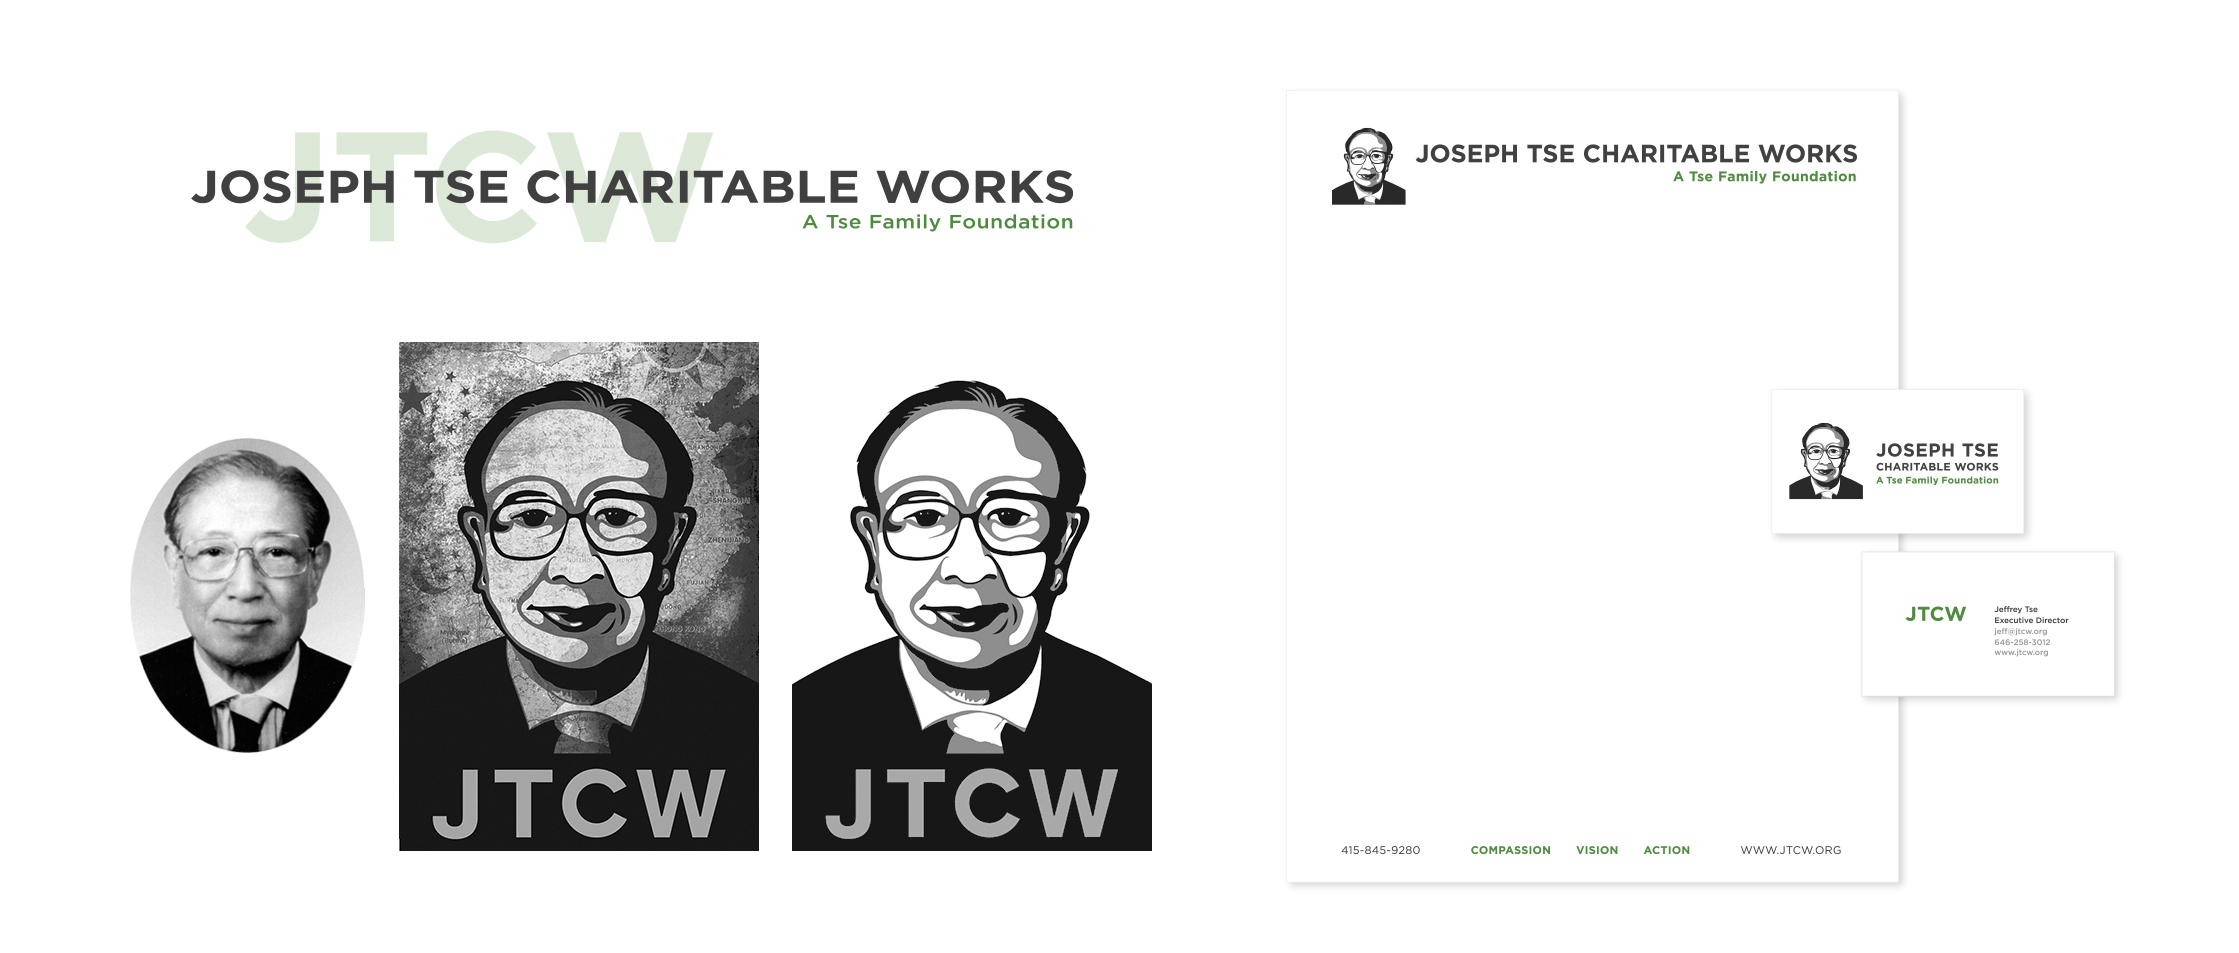 Joseph Tse Charitable Works